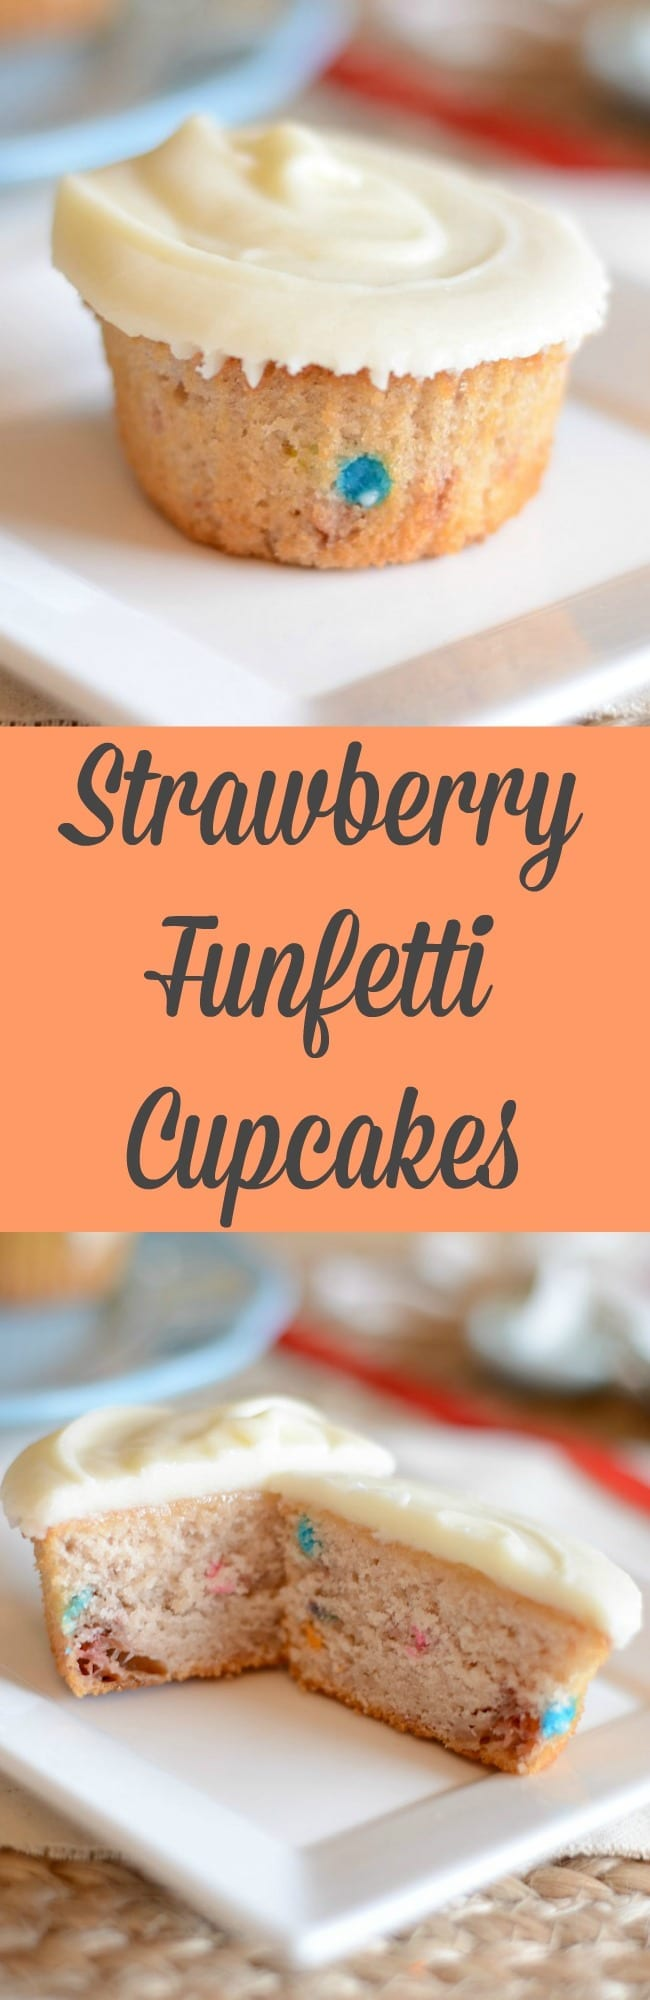 Homemade strawberry funfetti cupcakes!  Make these easy cupcakes for a birthday party or just for fun!